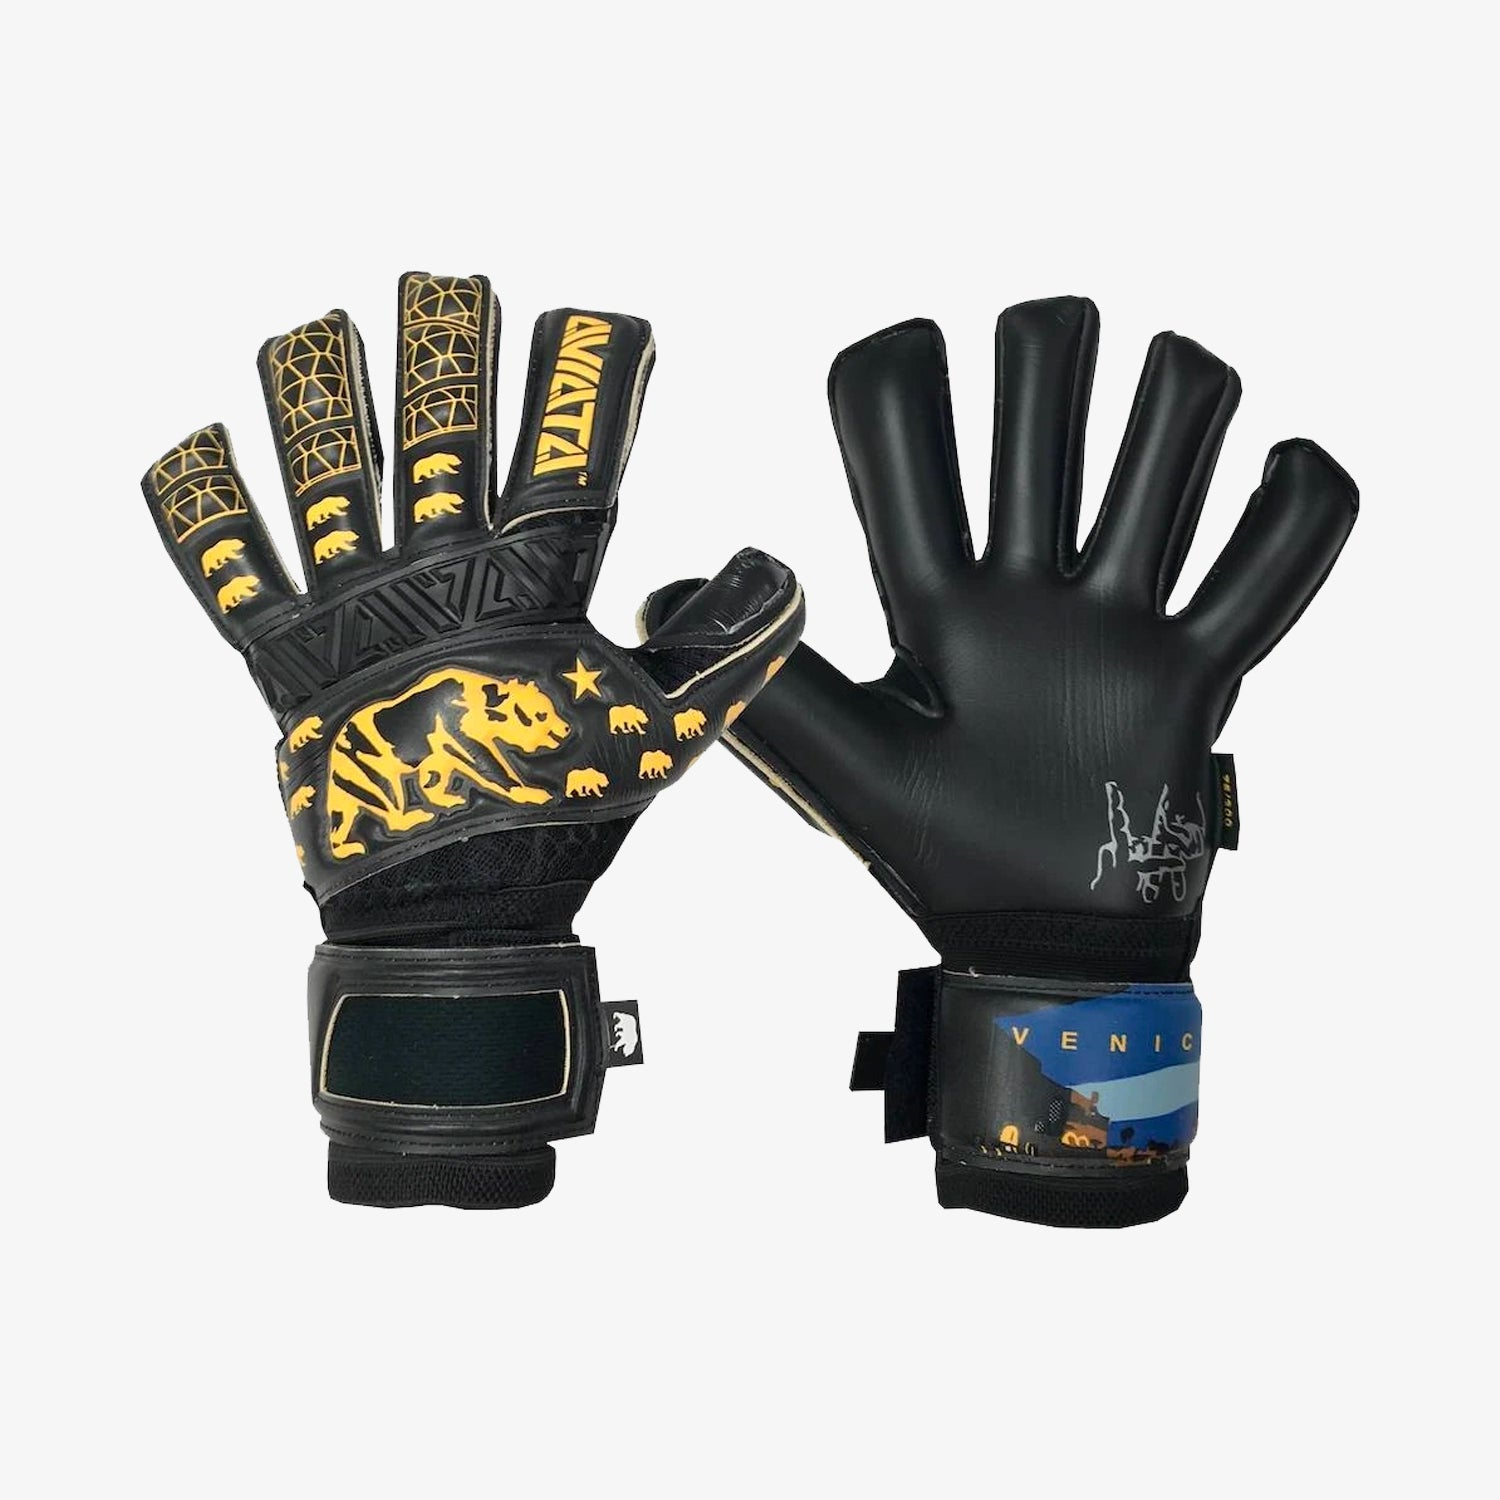 Venice Cali Luv Goalkeeper Glove